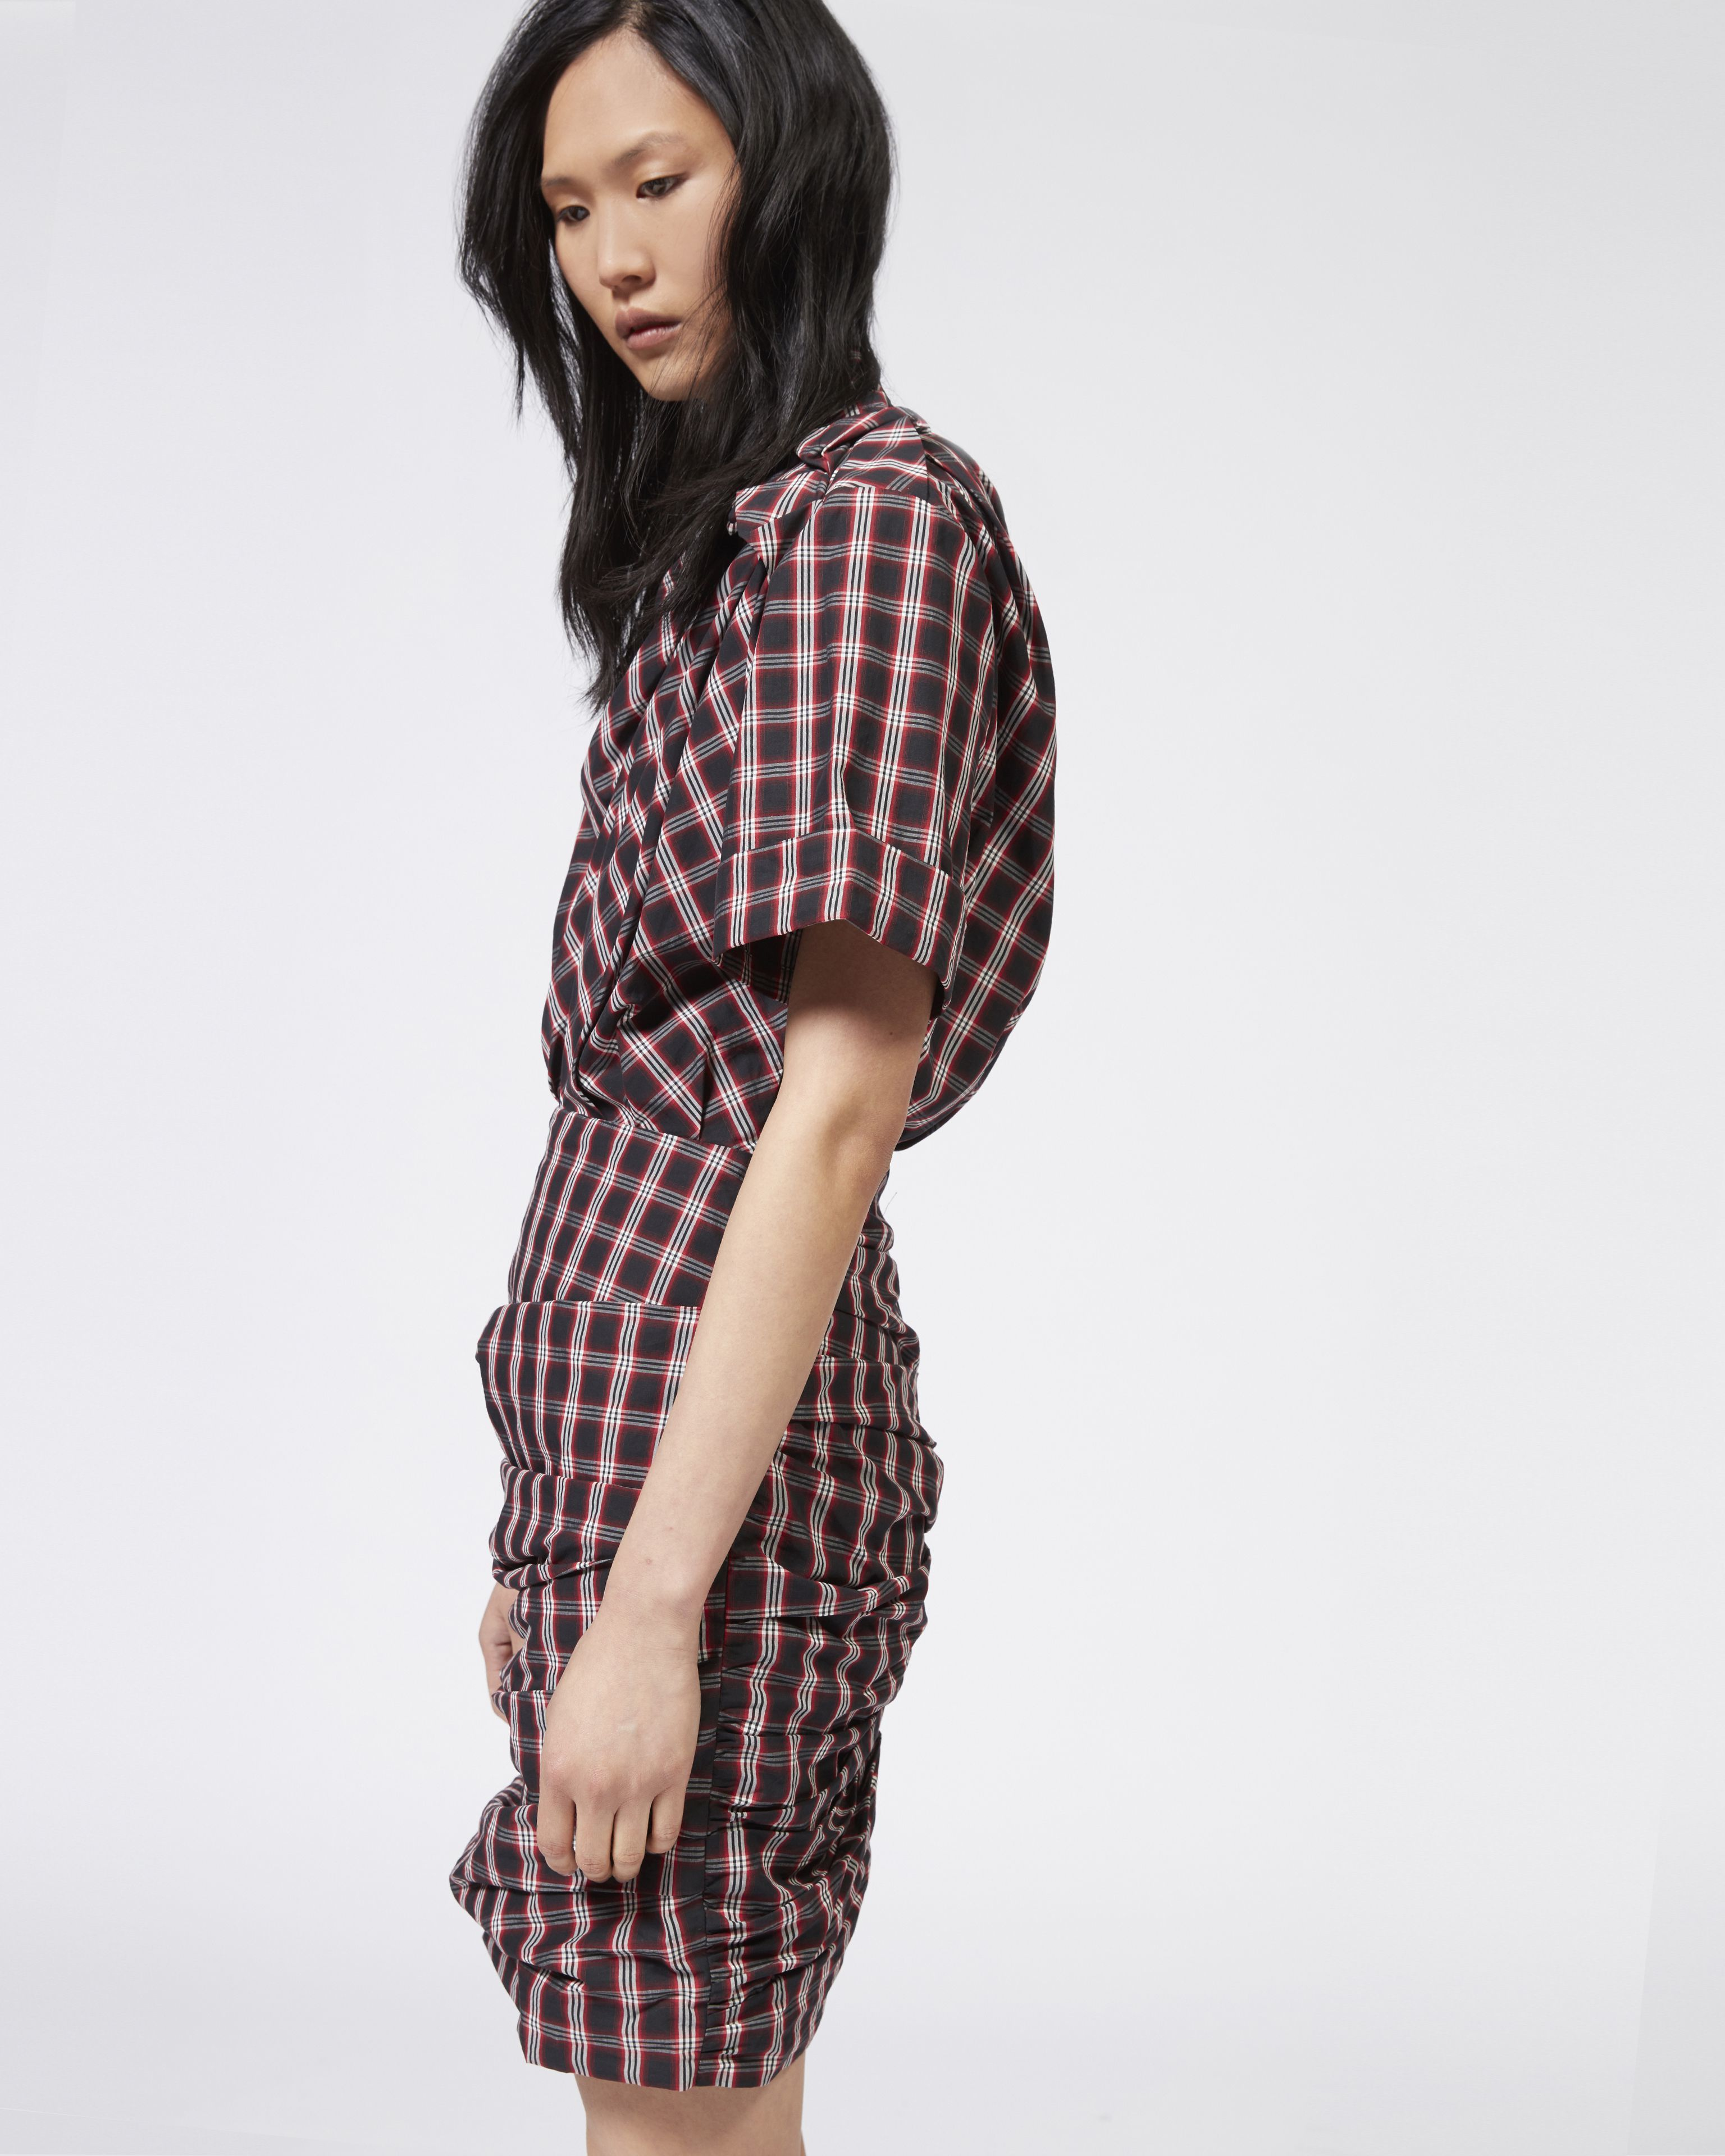 ORIA plaid dress